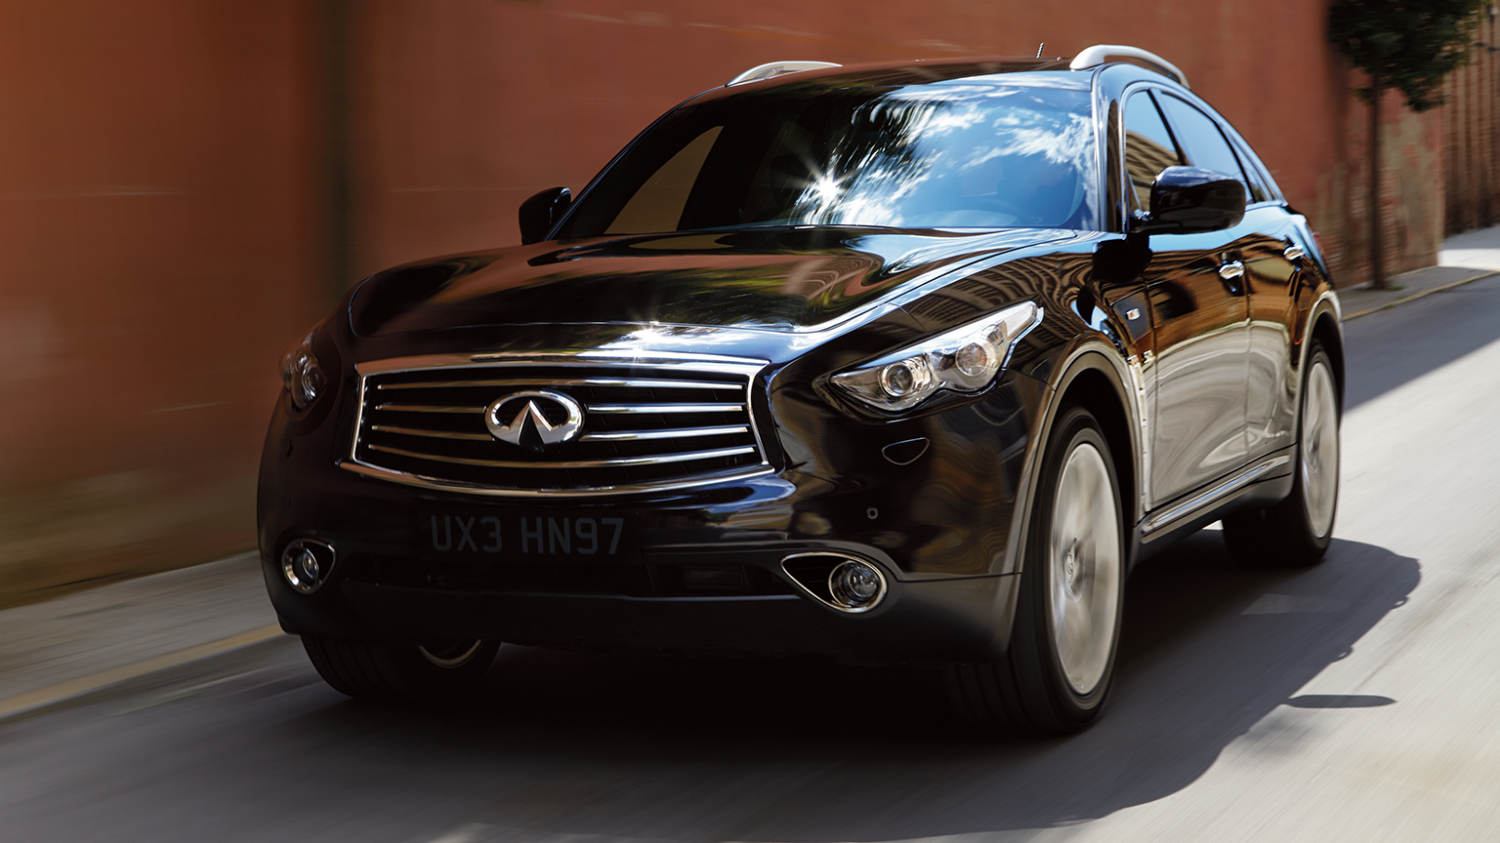 Avertissement anticollision frontale (FCW - Forward Collision Warning) de l'Infiniti QX70